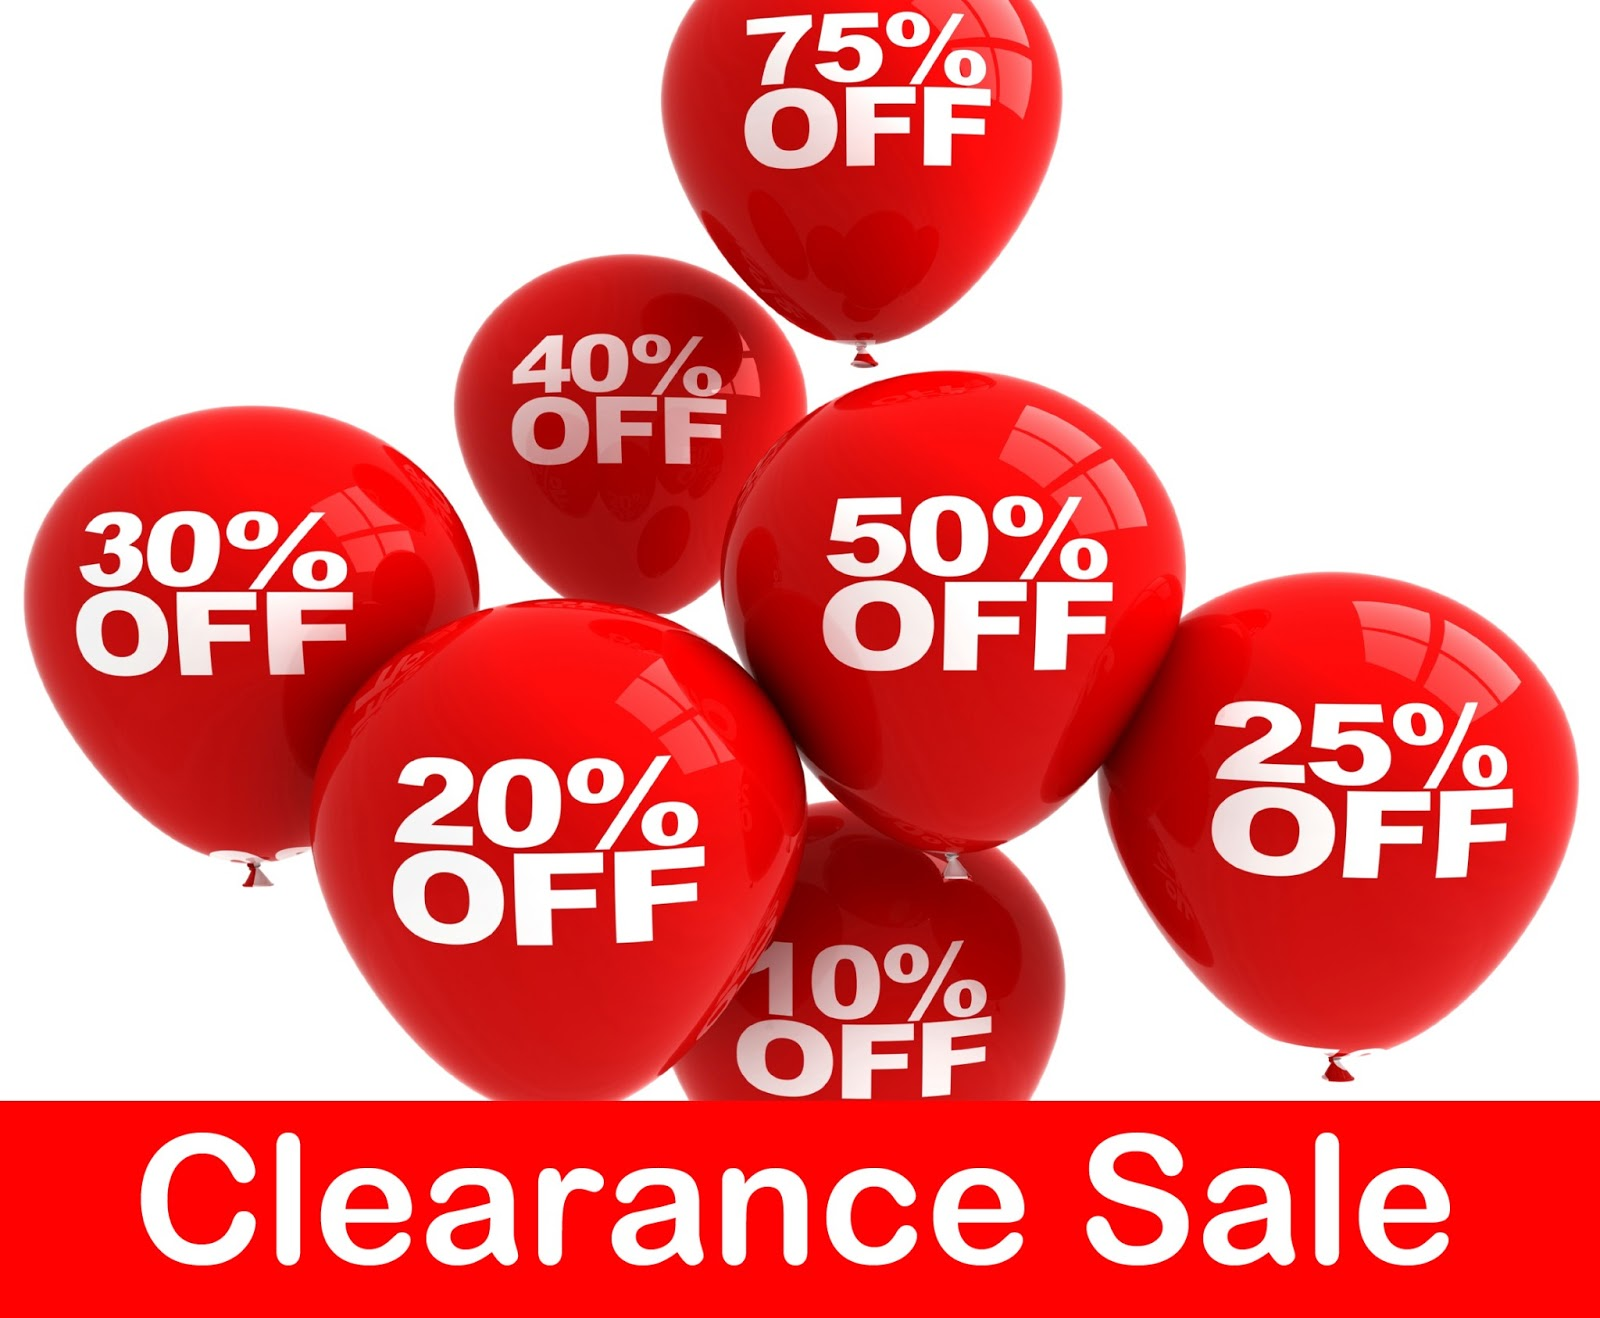 Beauty By Crystal: 5 Tips to Clearance Sale Shopping